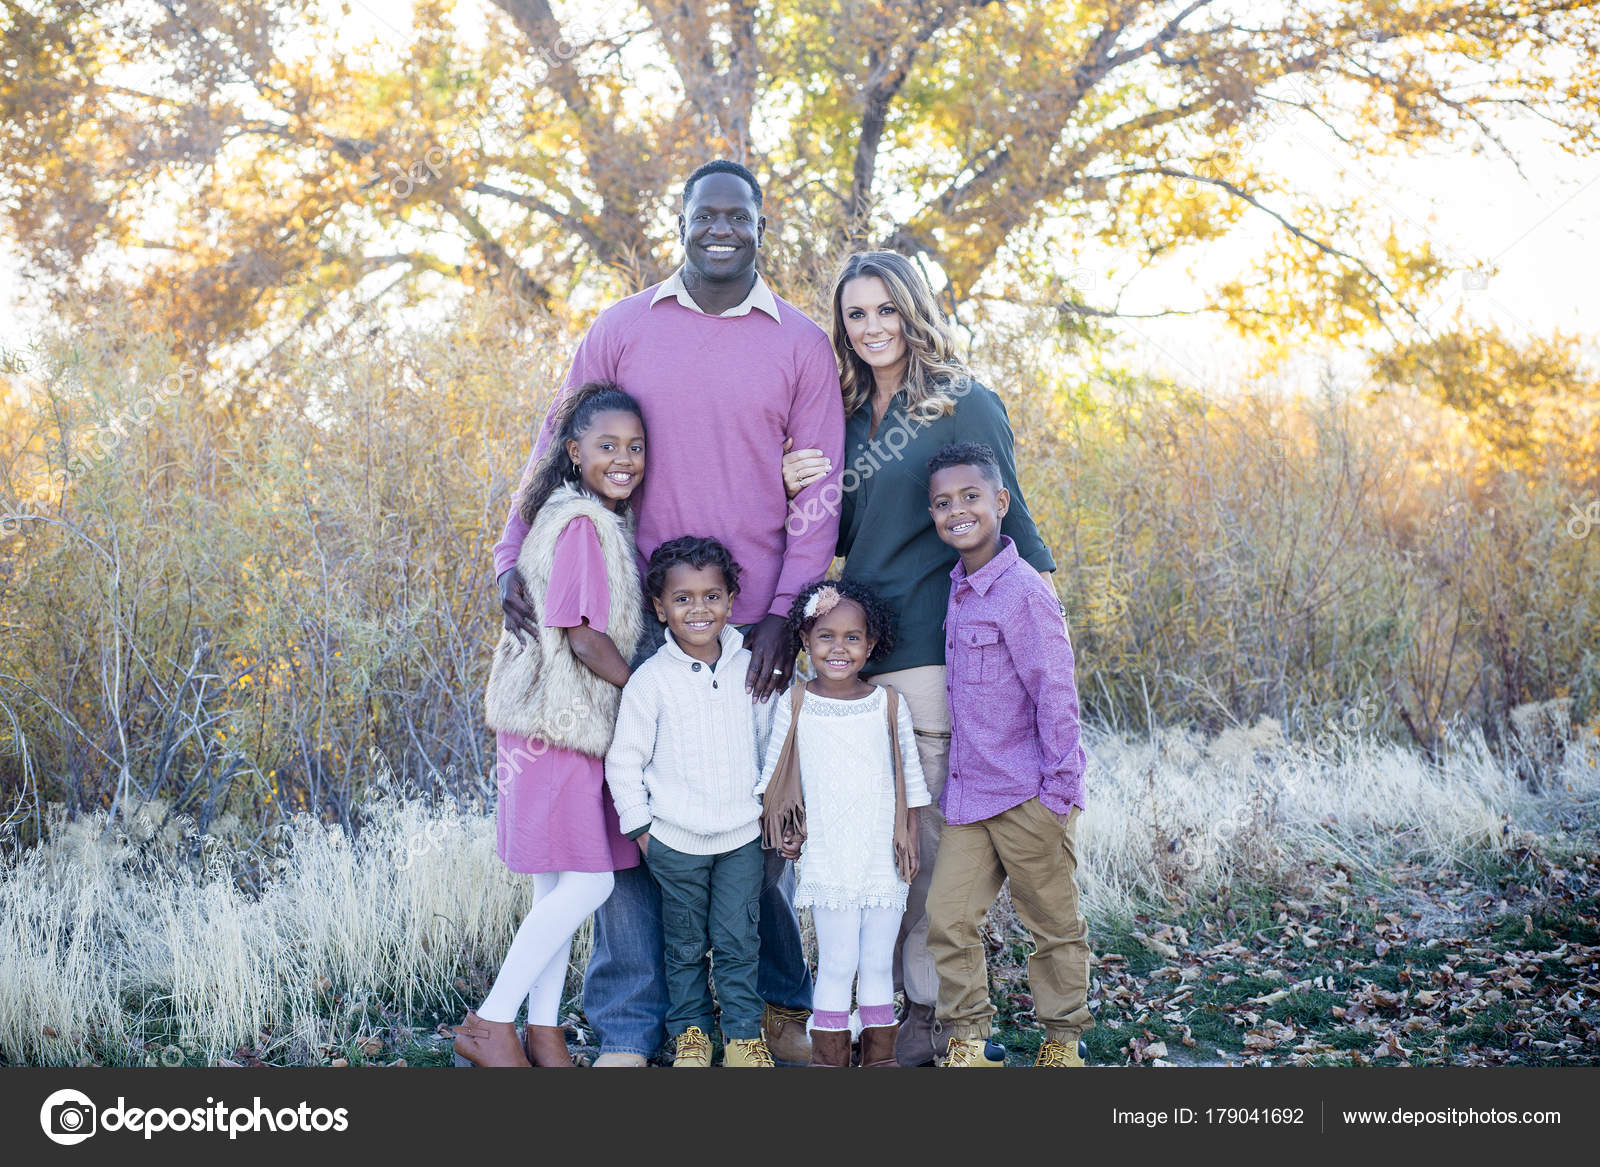 beautiful racial family portrait outdoors parents cute kids smiling